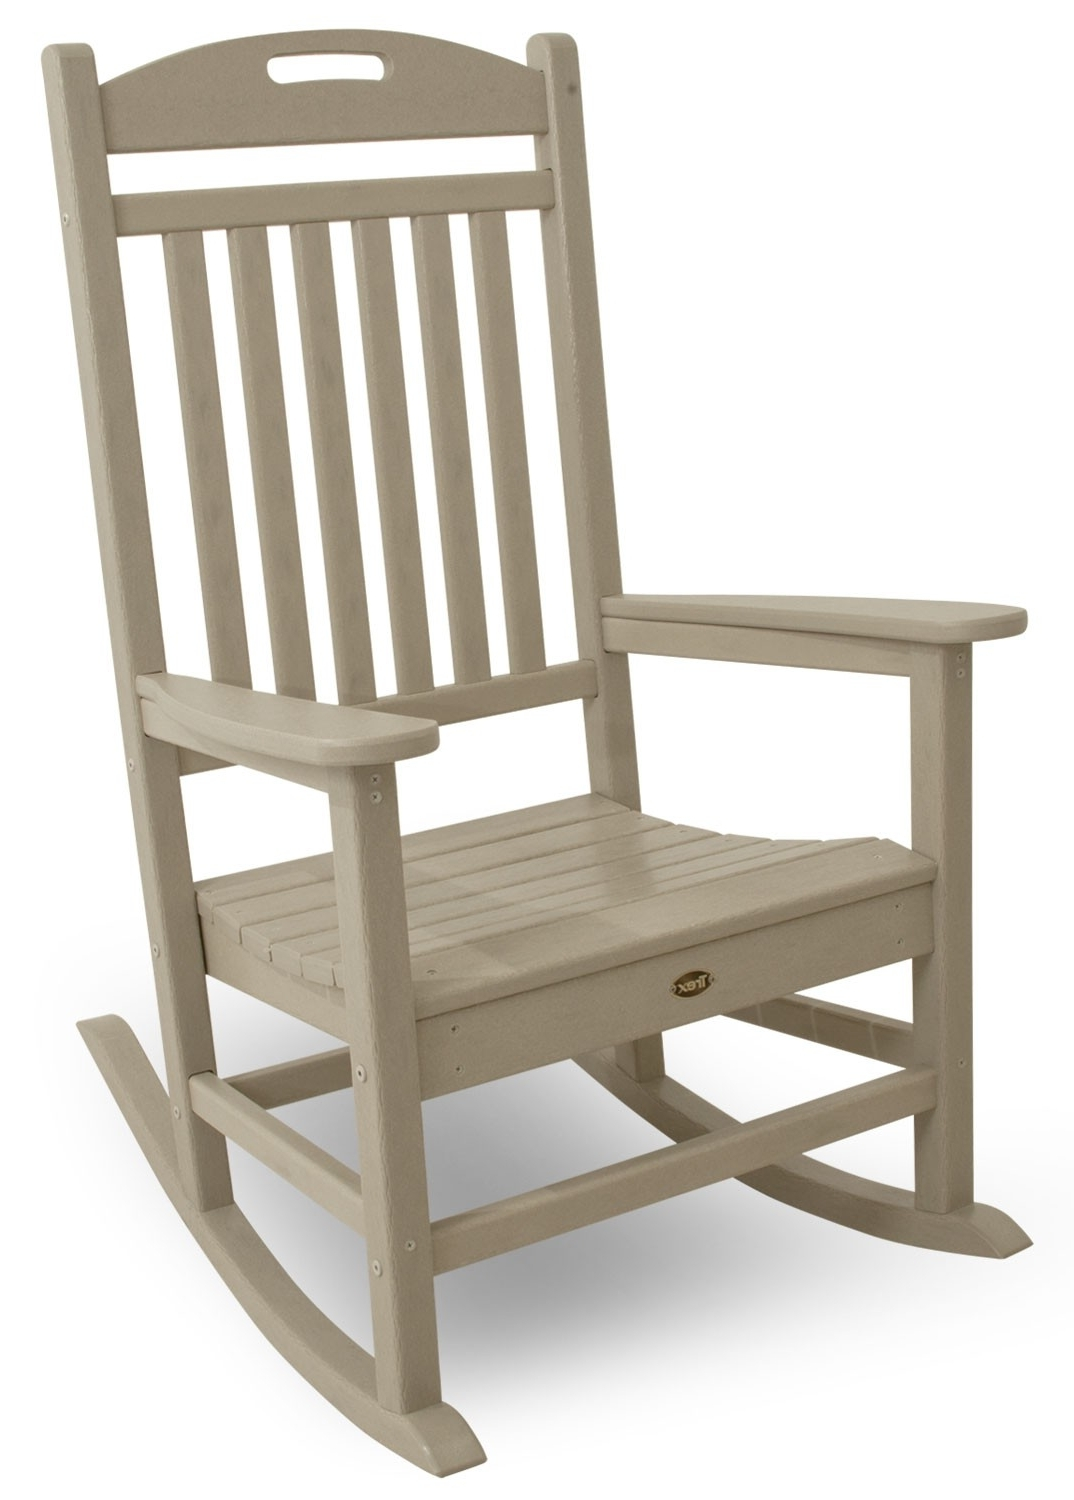 Wooden Patio Rocking Chairs Pertaining To Well Known Yacht Club Rocking Chair (View 10 of 15)